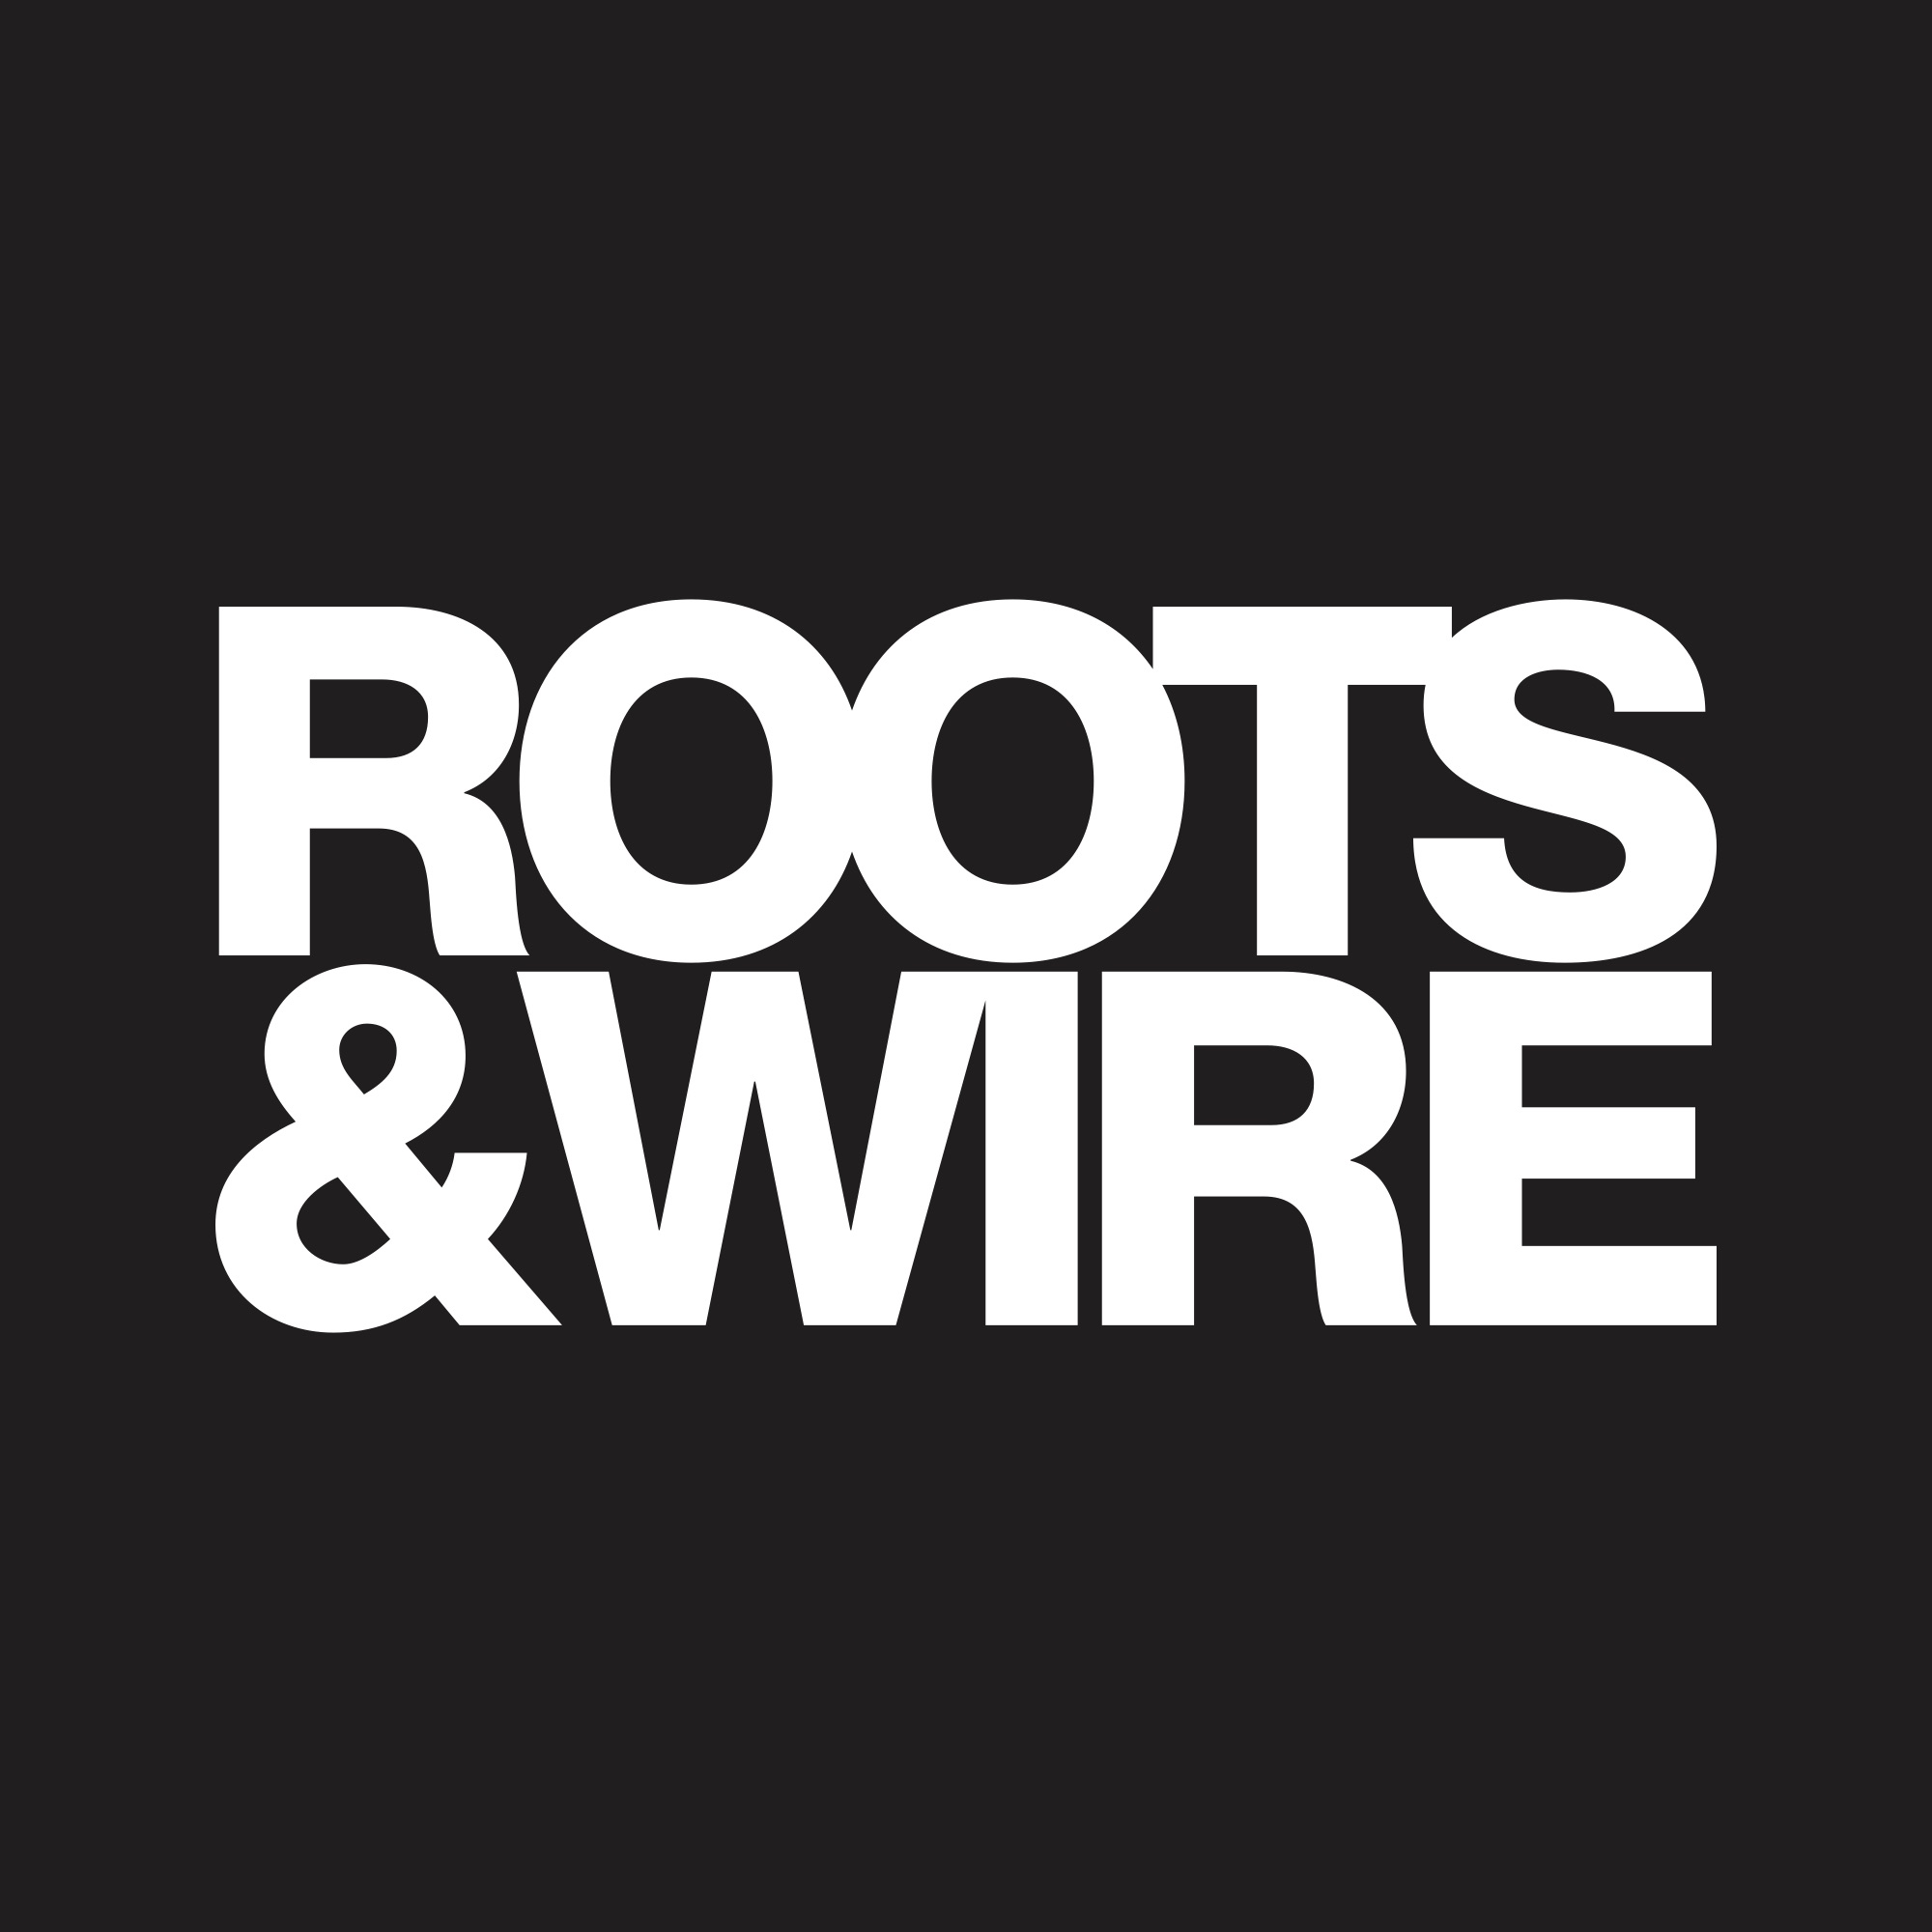 Roots & Wire